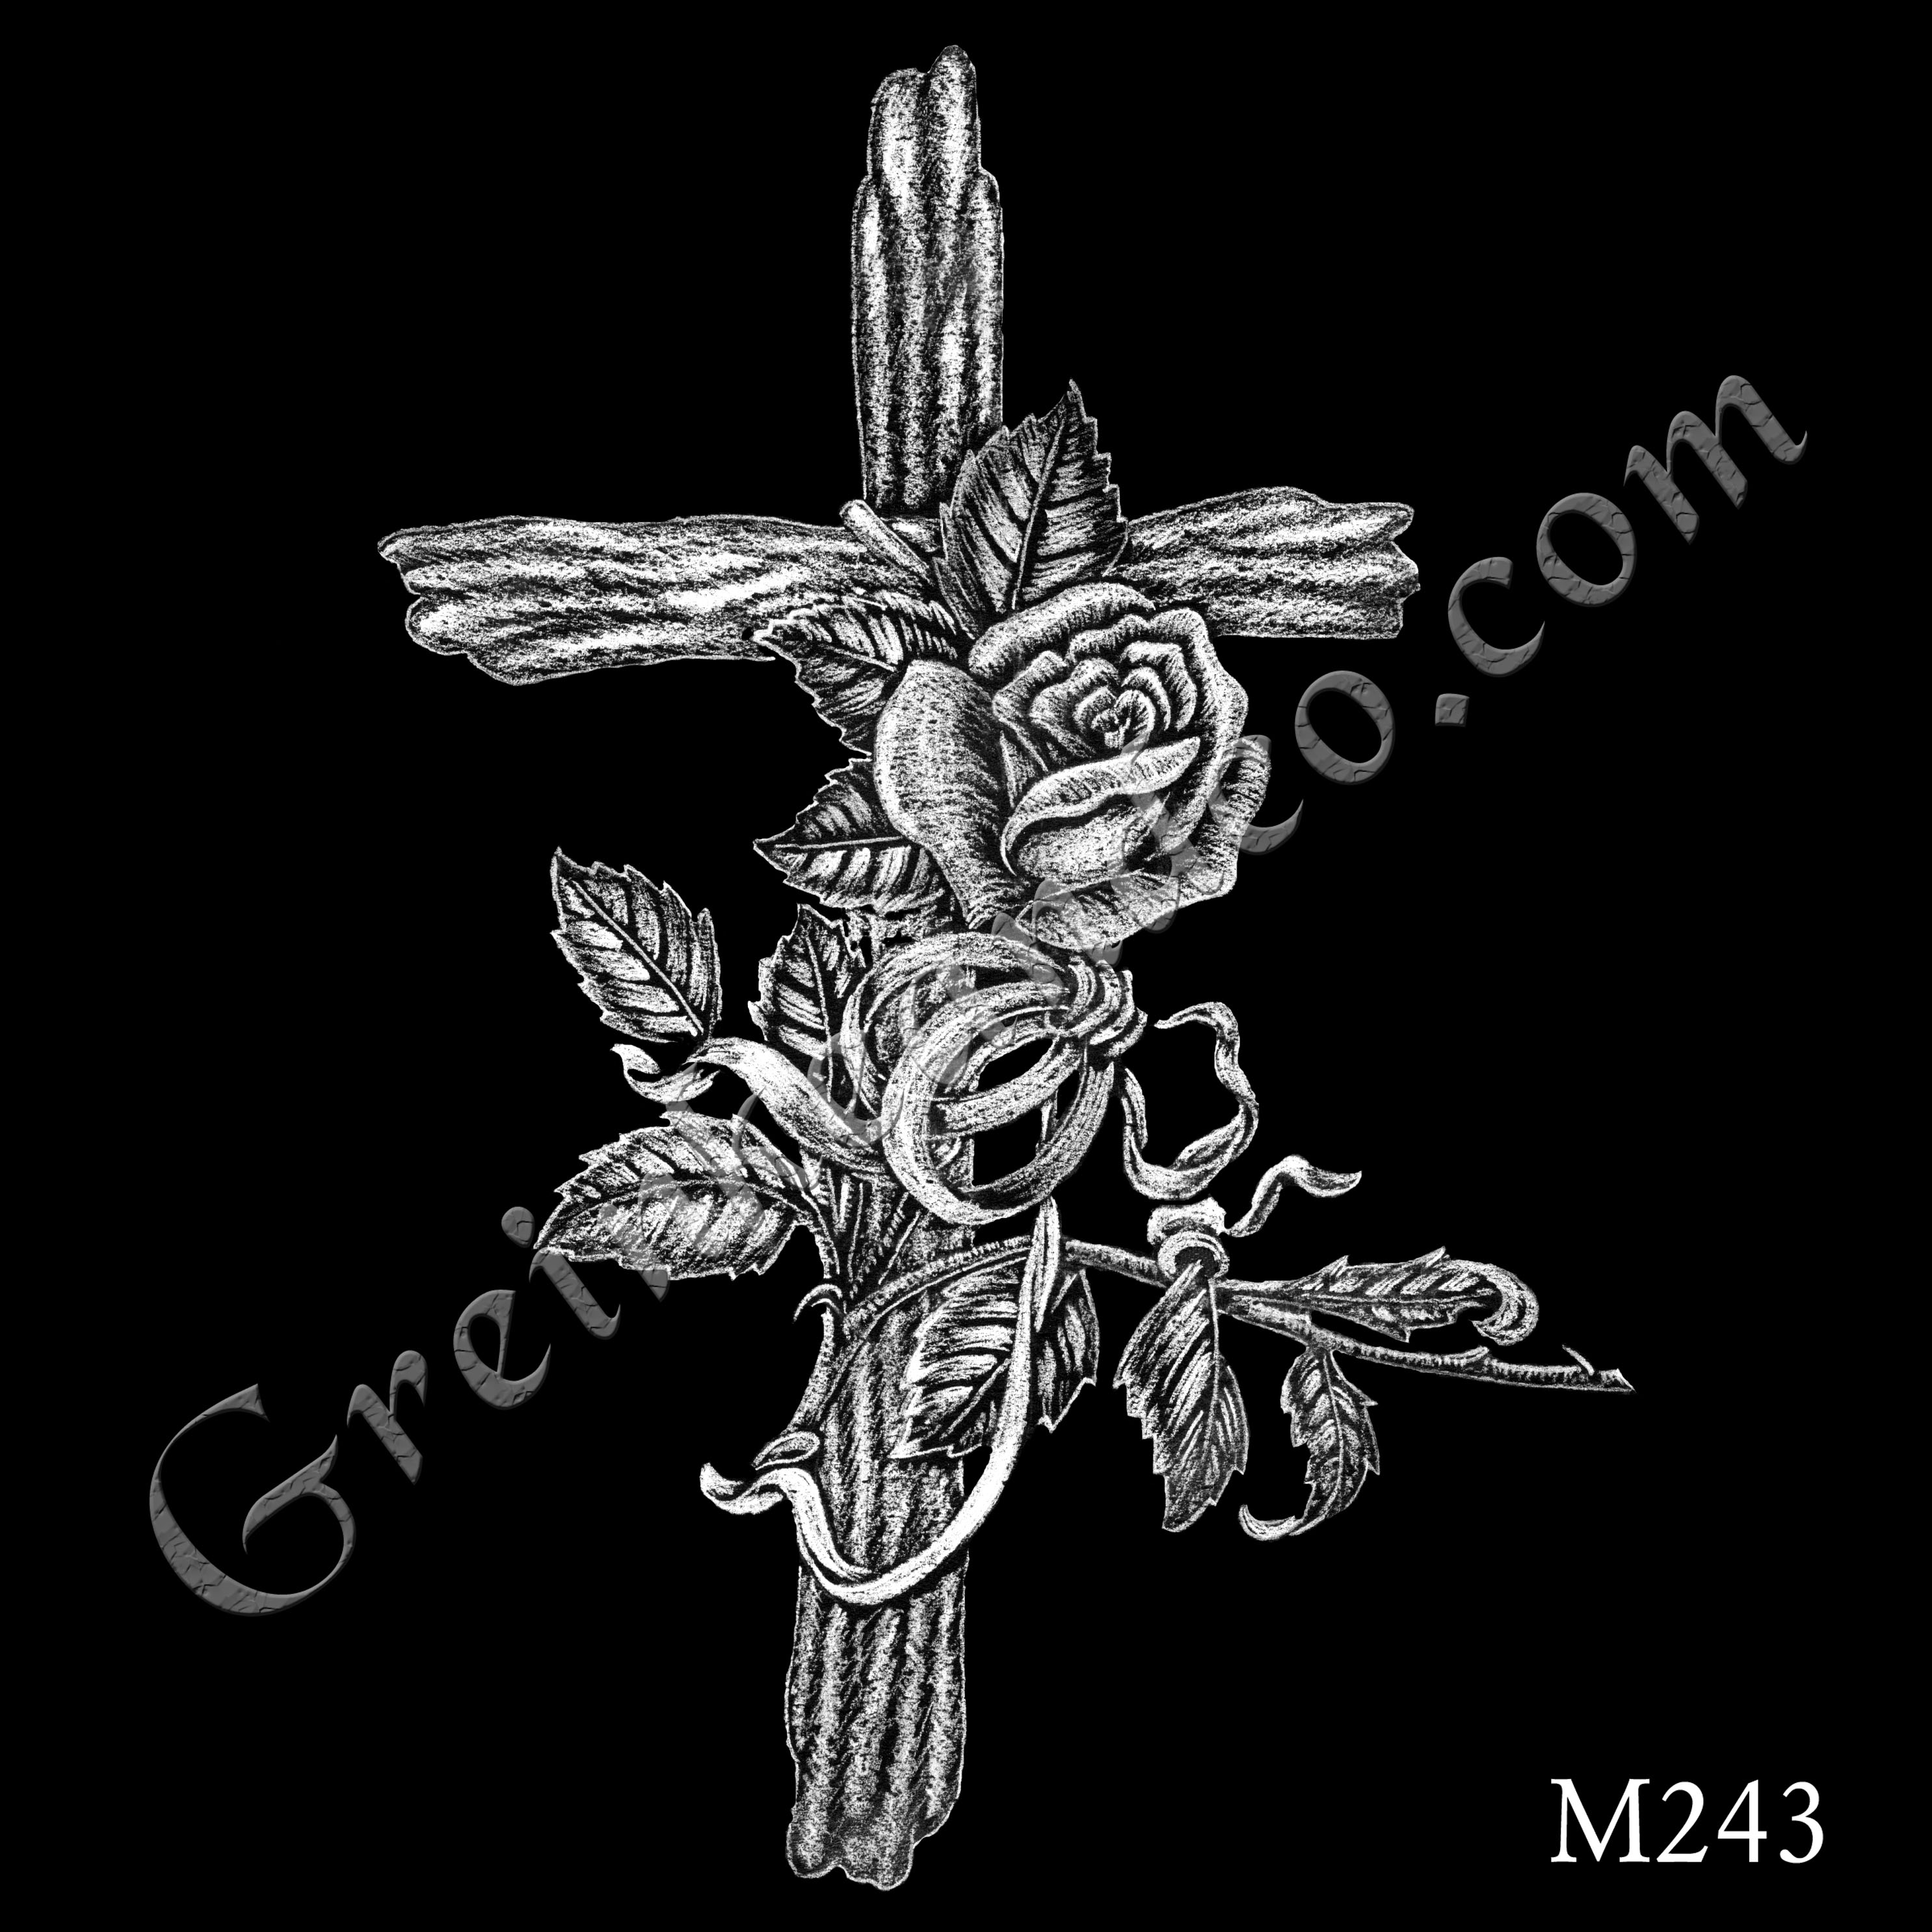 M243 - Cross, Rose, Rings B